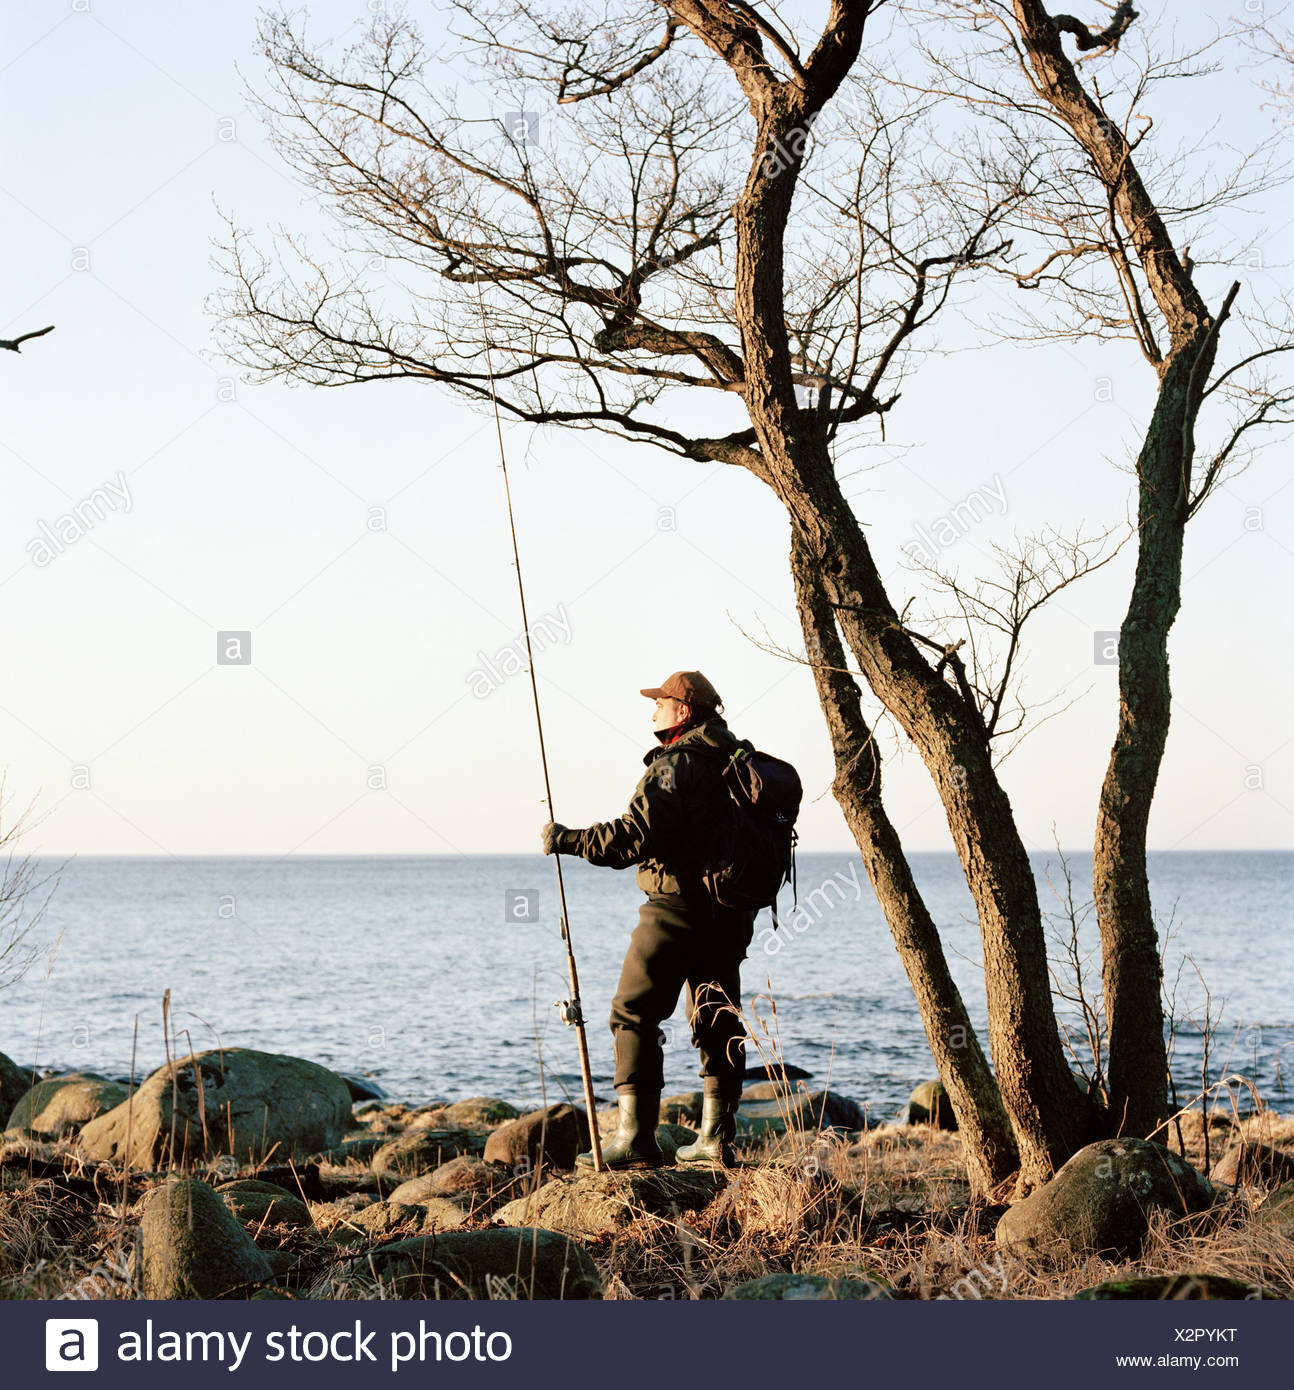 Man fishing by the sea, Sweden. - Stock Image